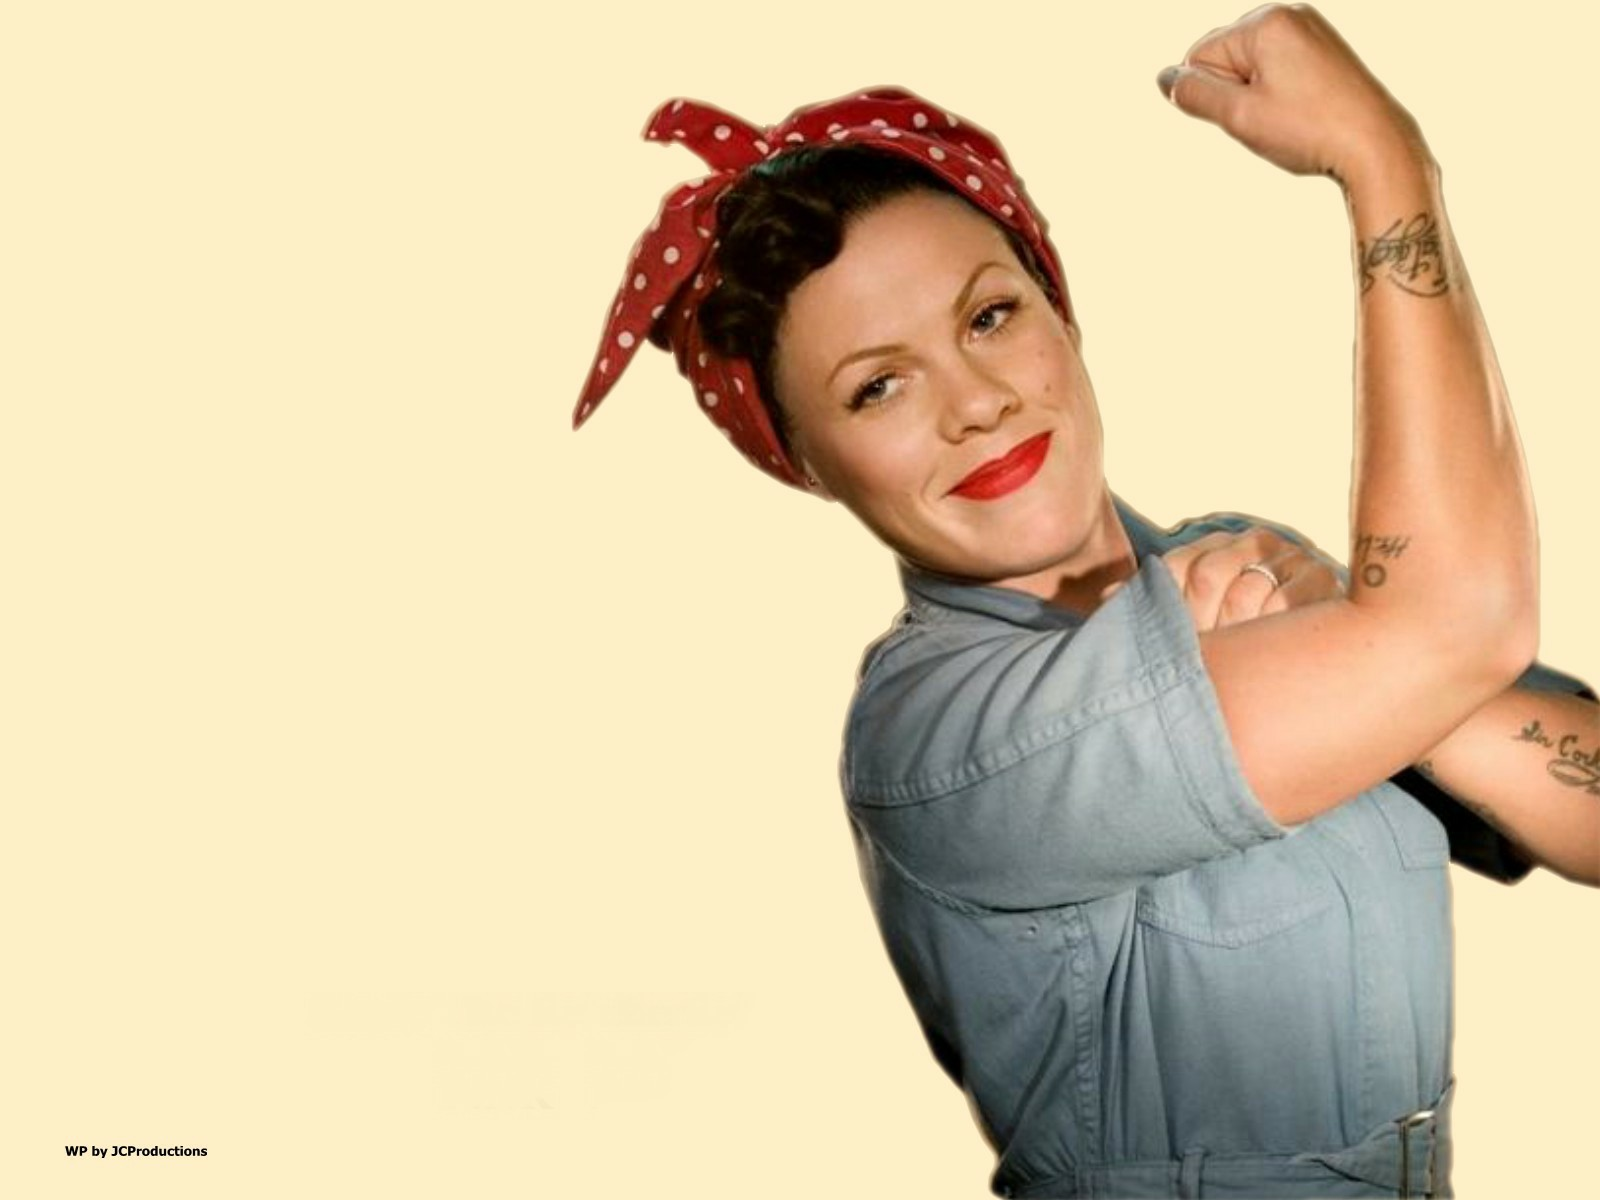 Rosie The Riveter a.k.a. P!nk